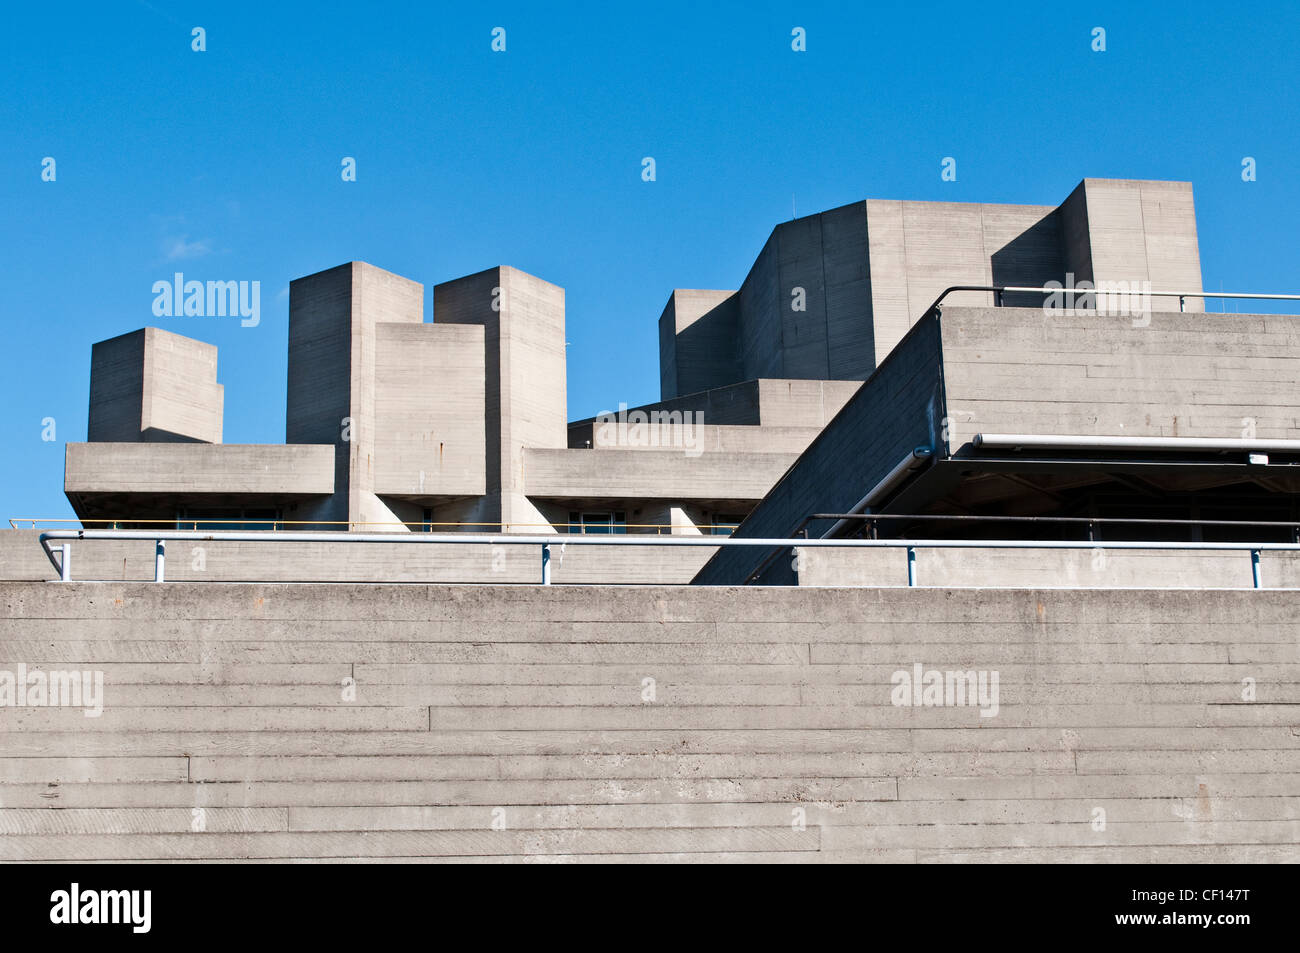 National Theatre, South Bank Centre, London, UK - Stock Image